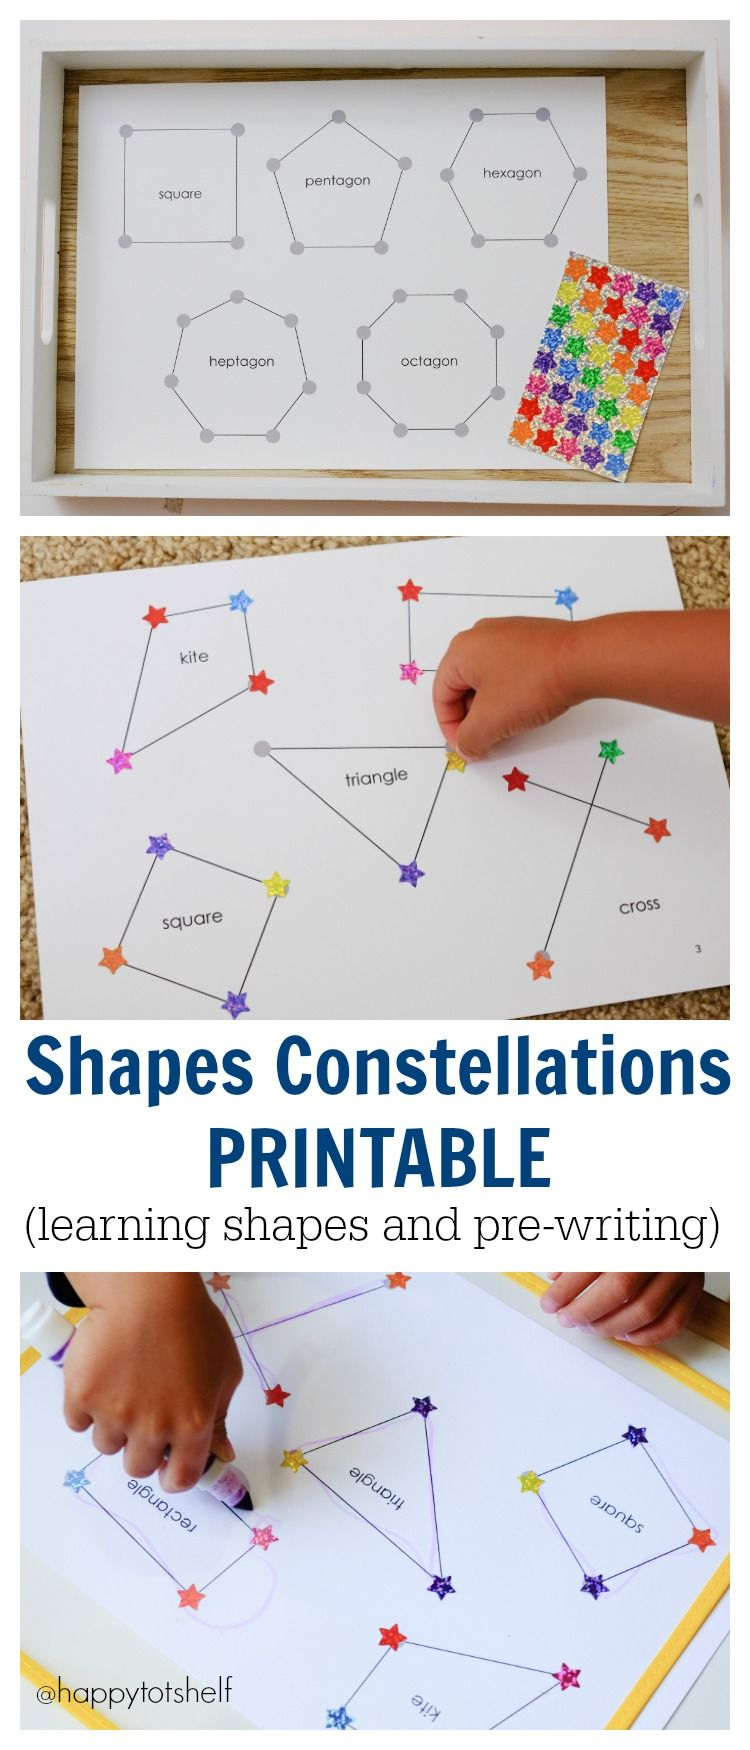 Shapes Constellation Printable An Activity To Explore Regular Polygons Sharing The Printab Shape Activities Preschool Constellation Activities Learning Shapes [ 1750 x 750 Pixel ]